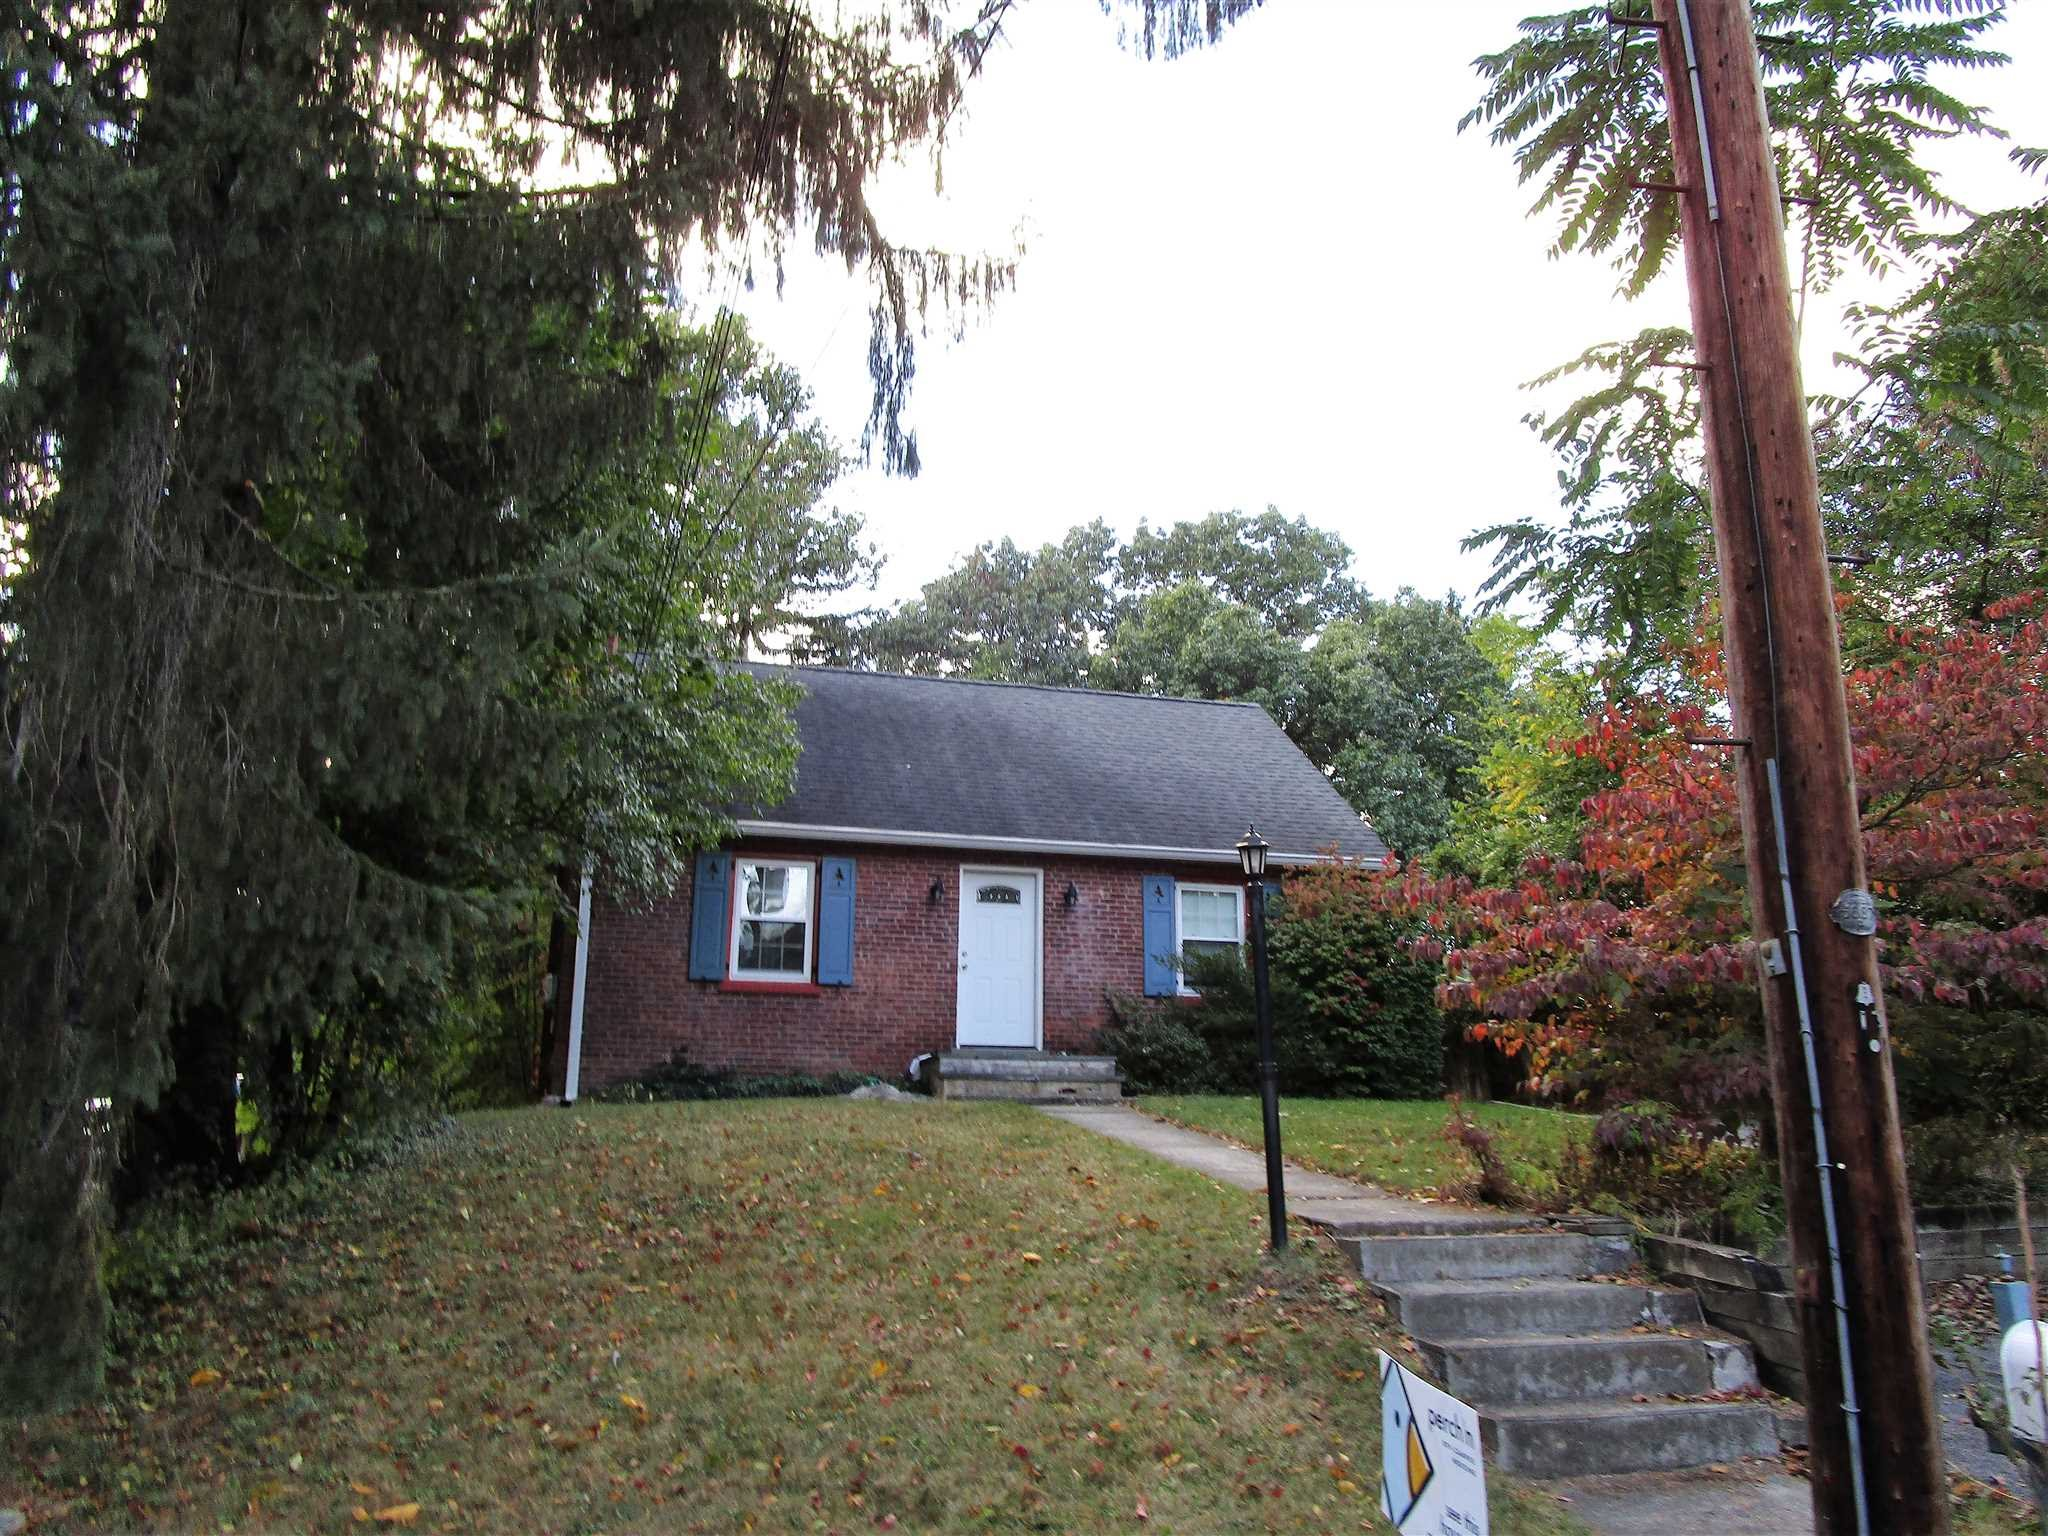 Single Family Home for Sale at 62 WOODLAWN Avenue 62 WOODLAWN Avenue Poughkeepsie, New York 12601 United States